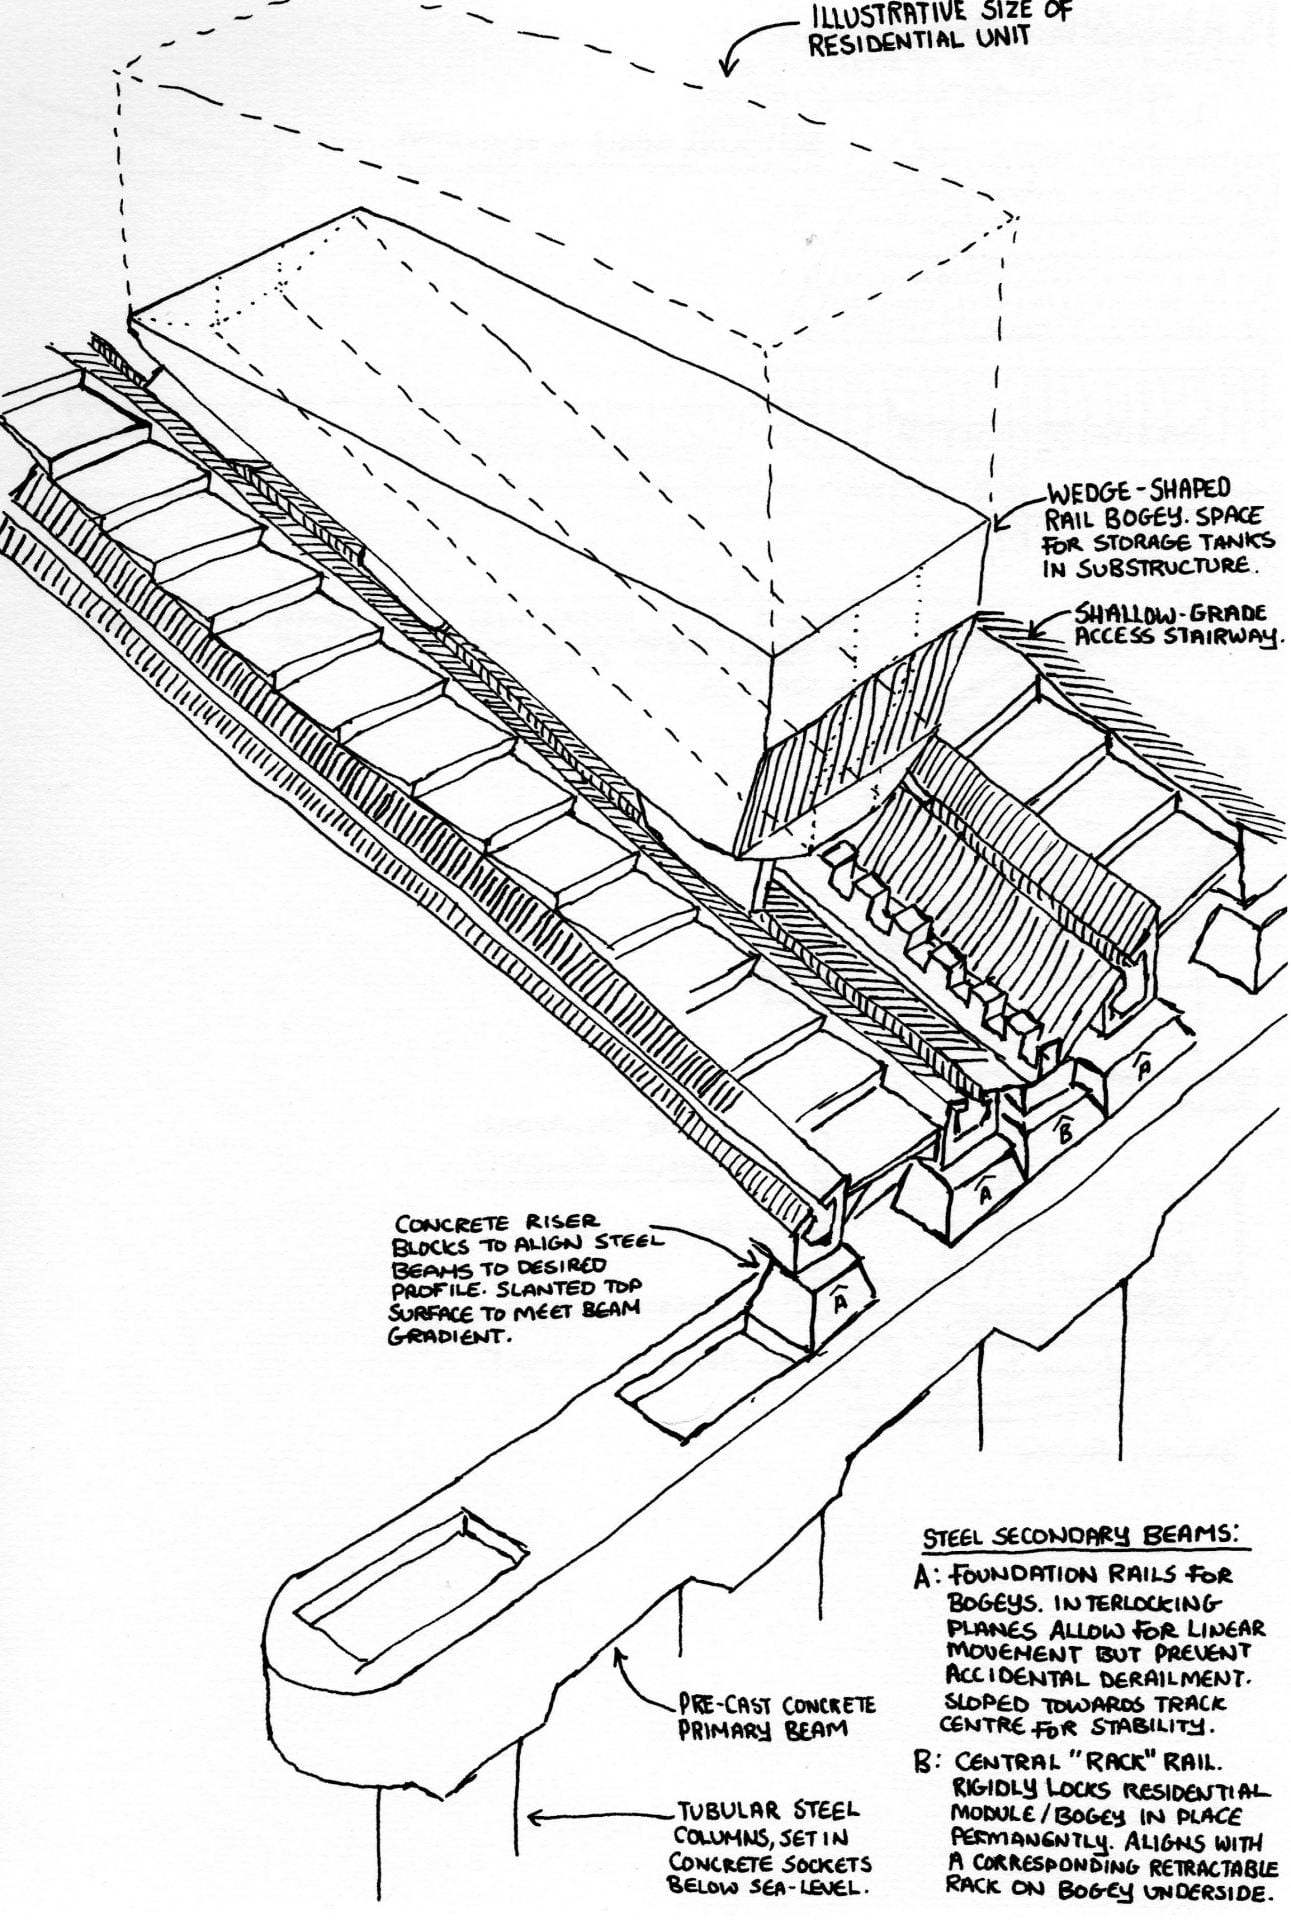 Sloping rail system for retrospectively deliverable and moveable residential units.